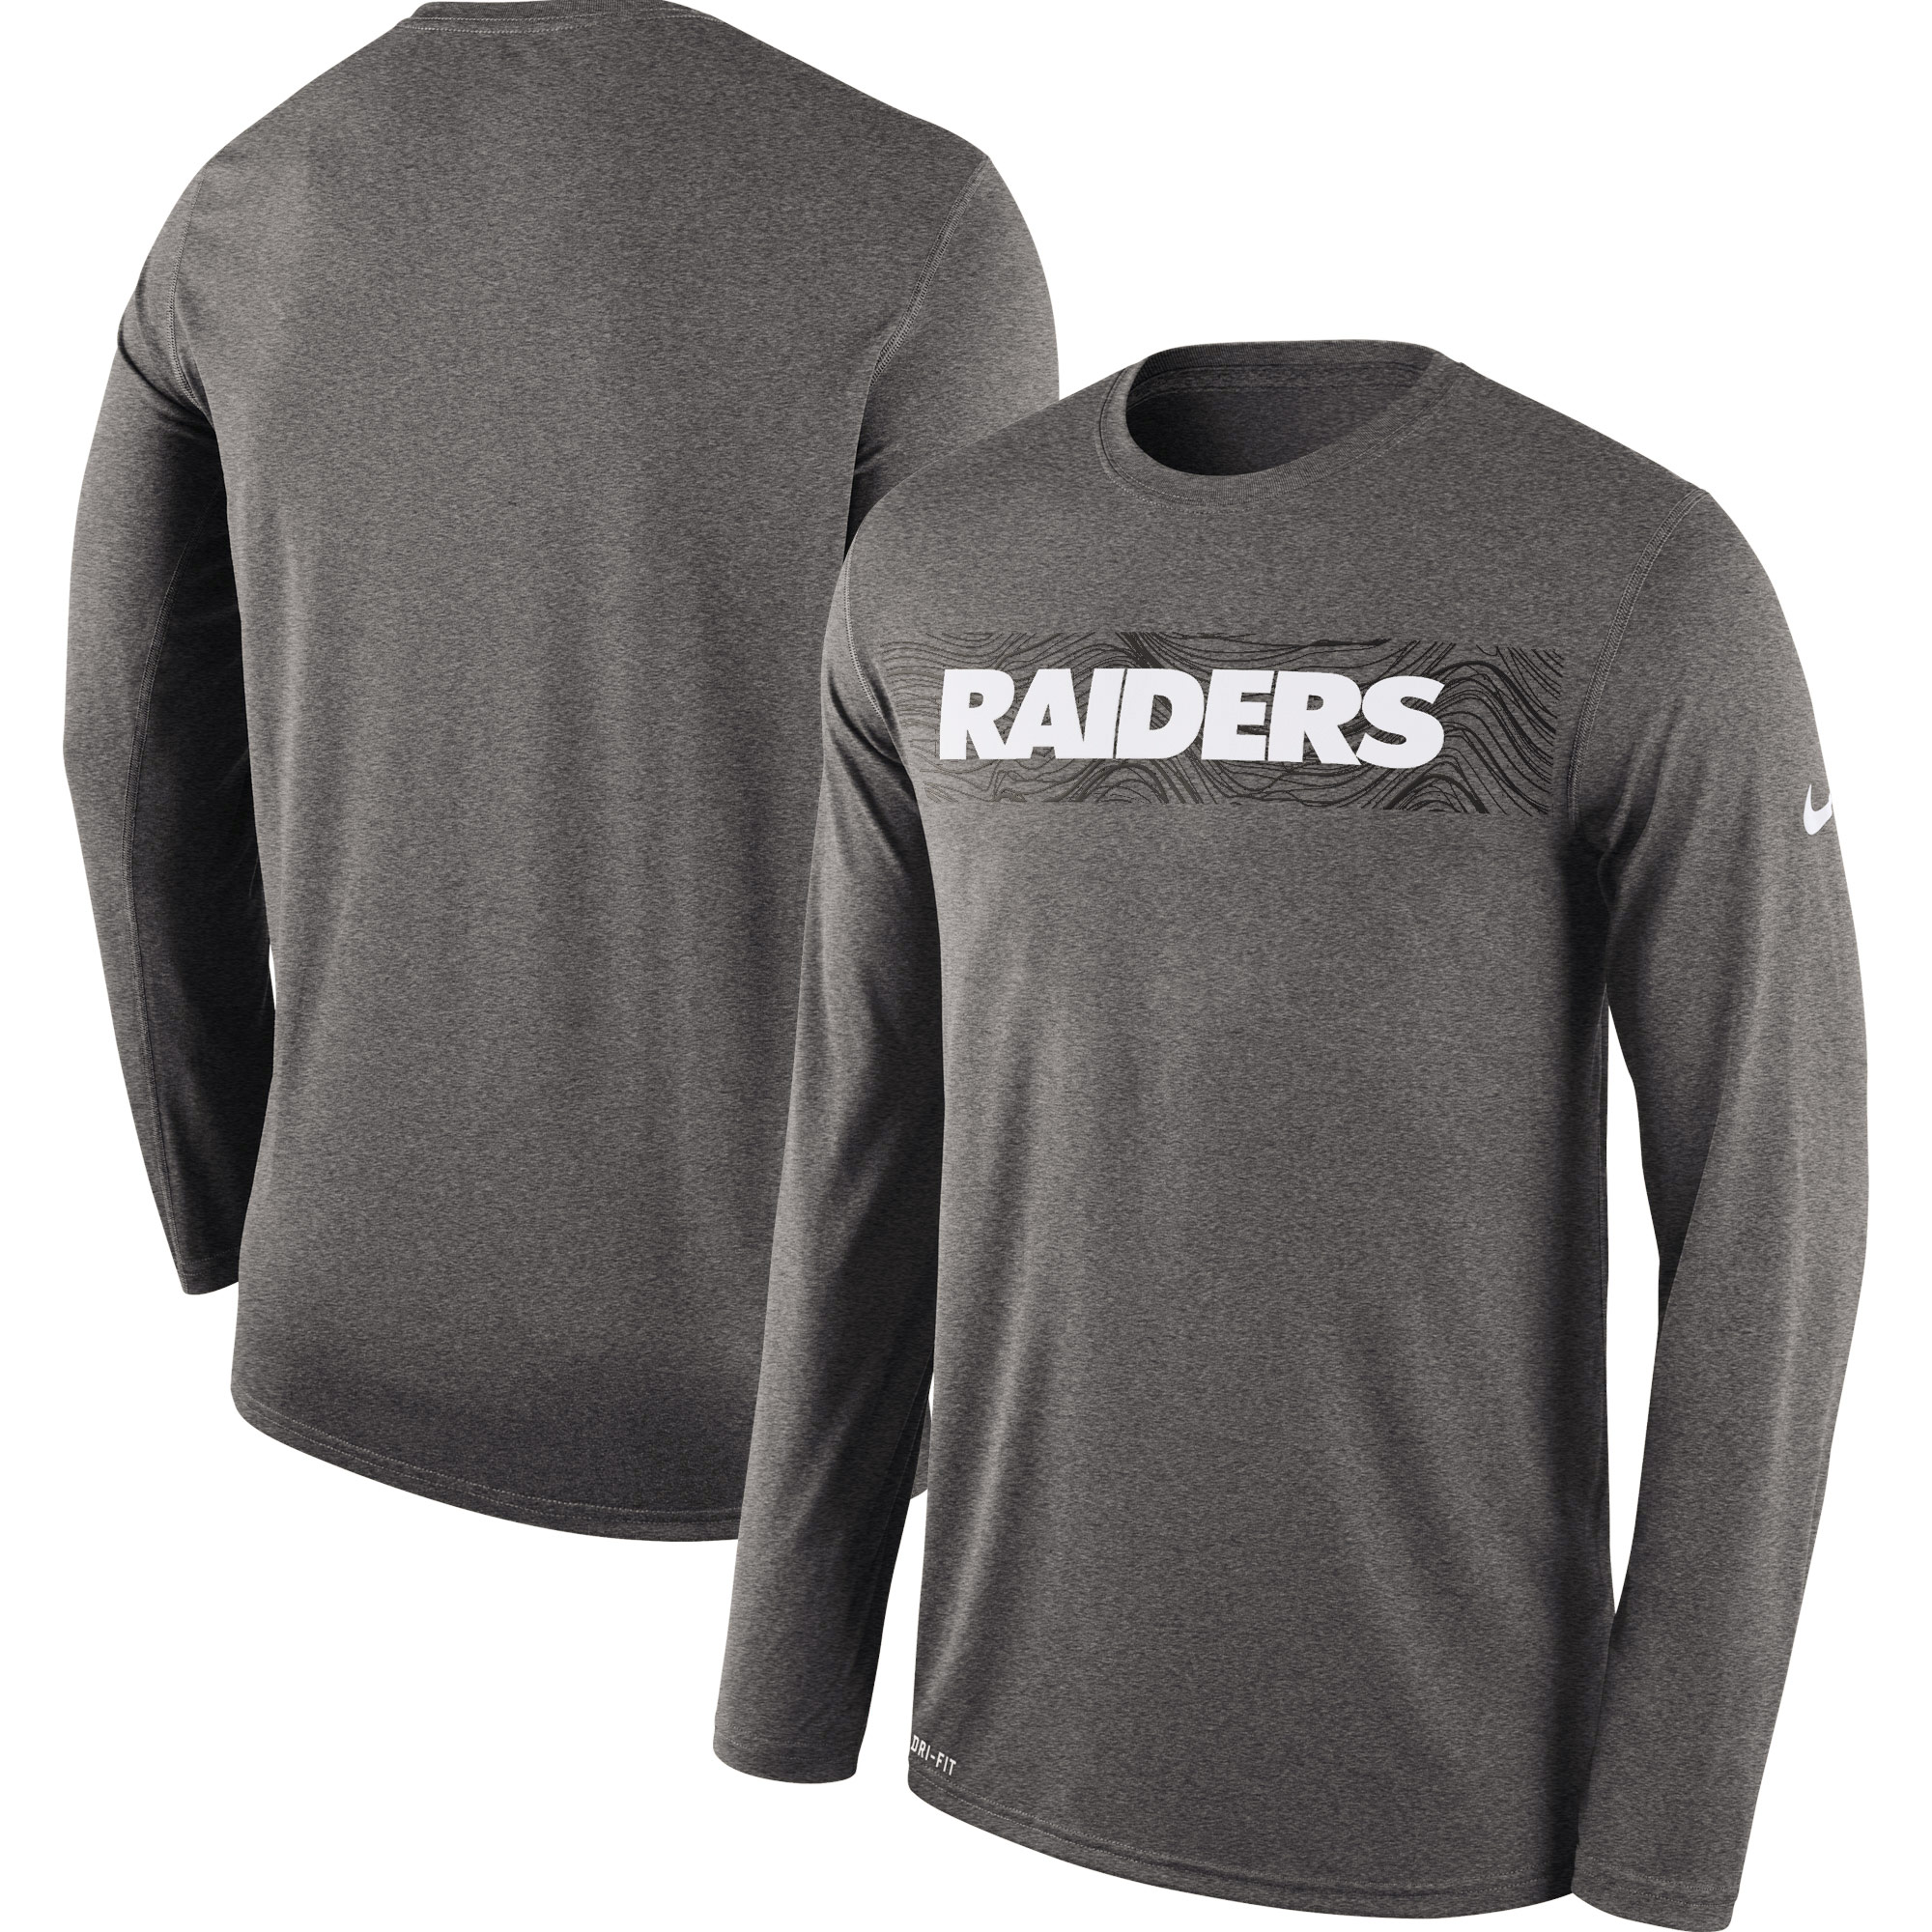 Oakland Raiders Nike Sideline Seismic Legend Long Sleeve T-Shirt - Heathered Charcoal